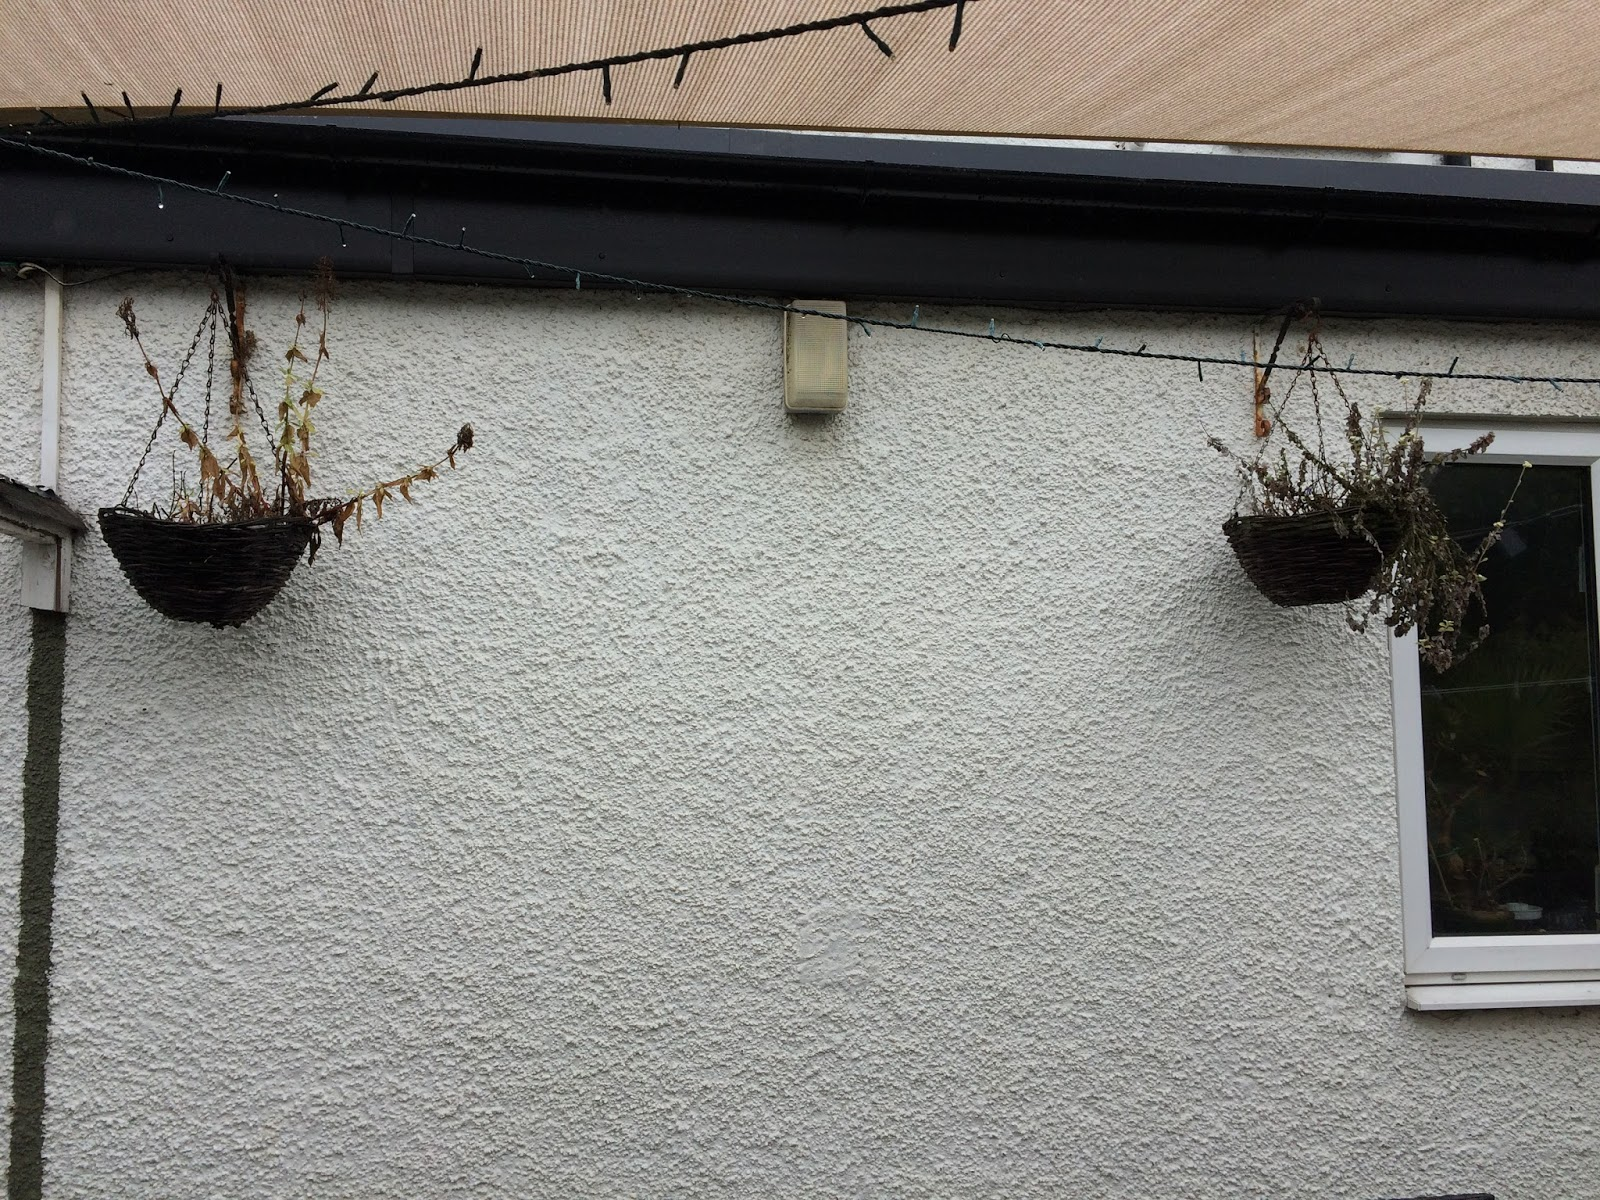 garden clean up - hanging baskets with dead plants